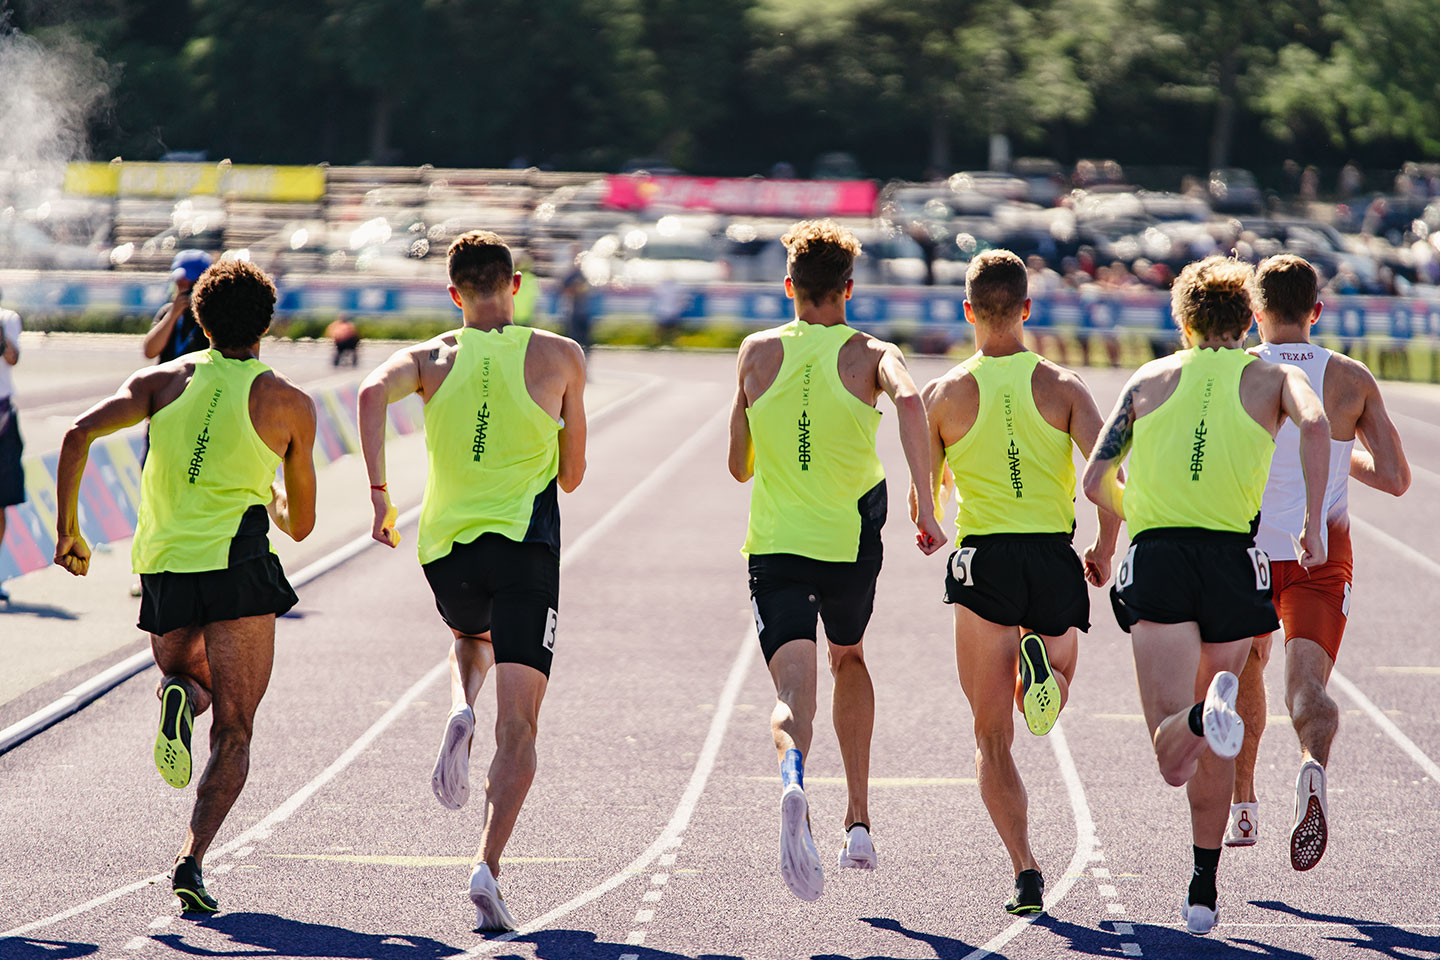 Athletes running on a track from behind in bright yellow uniforms